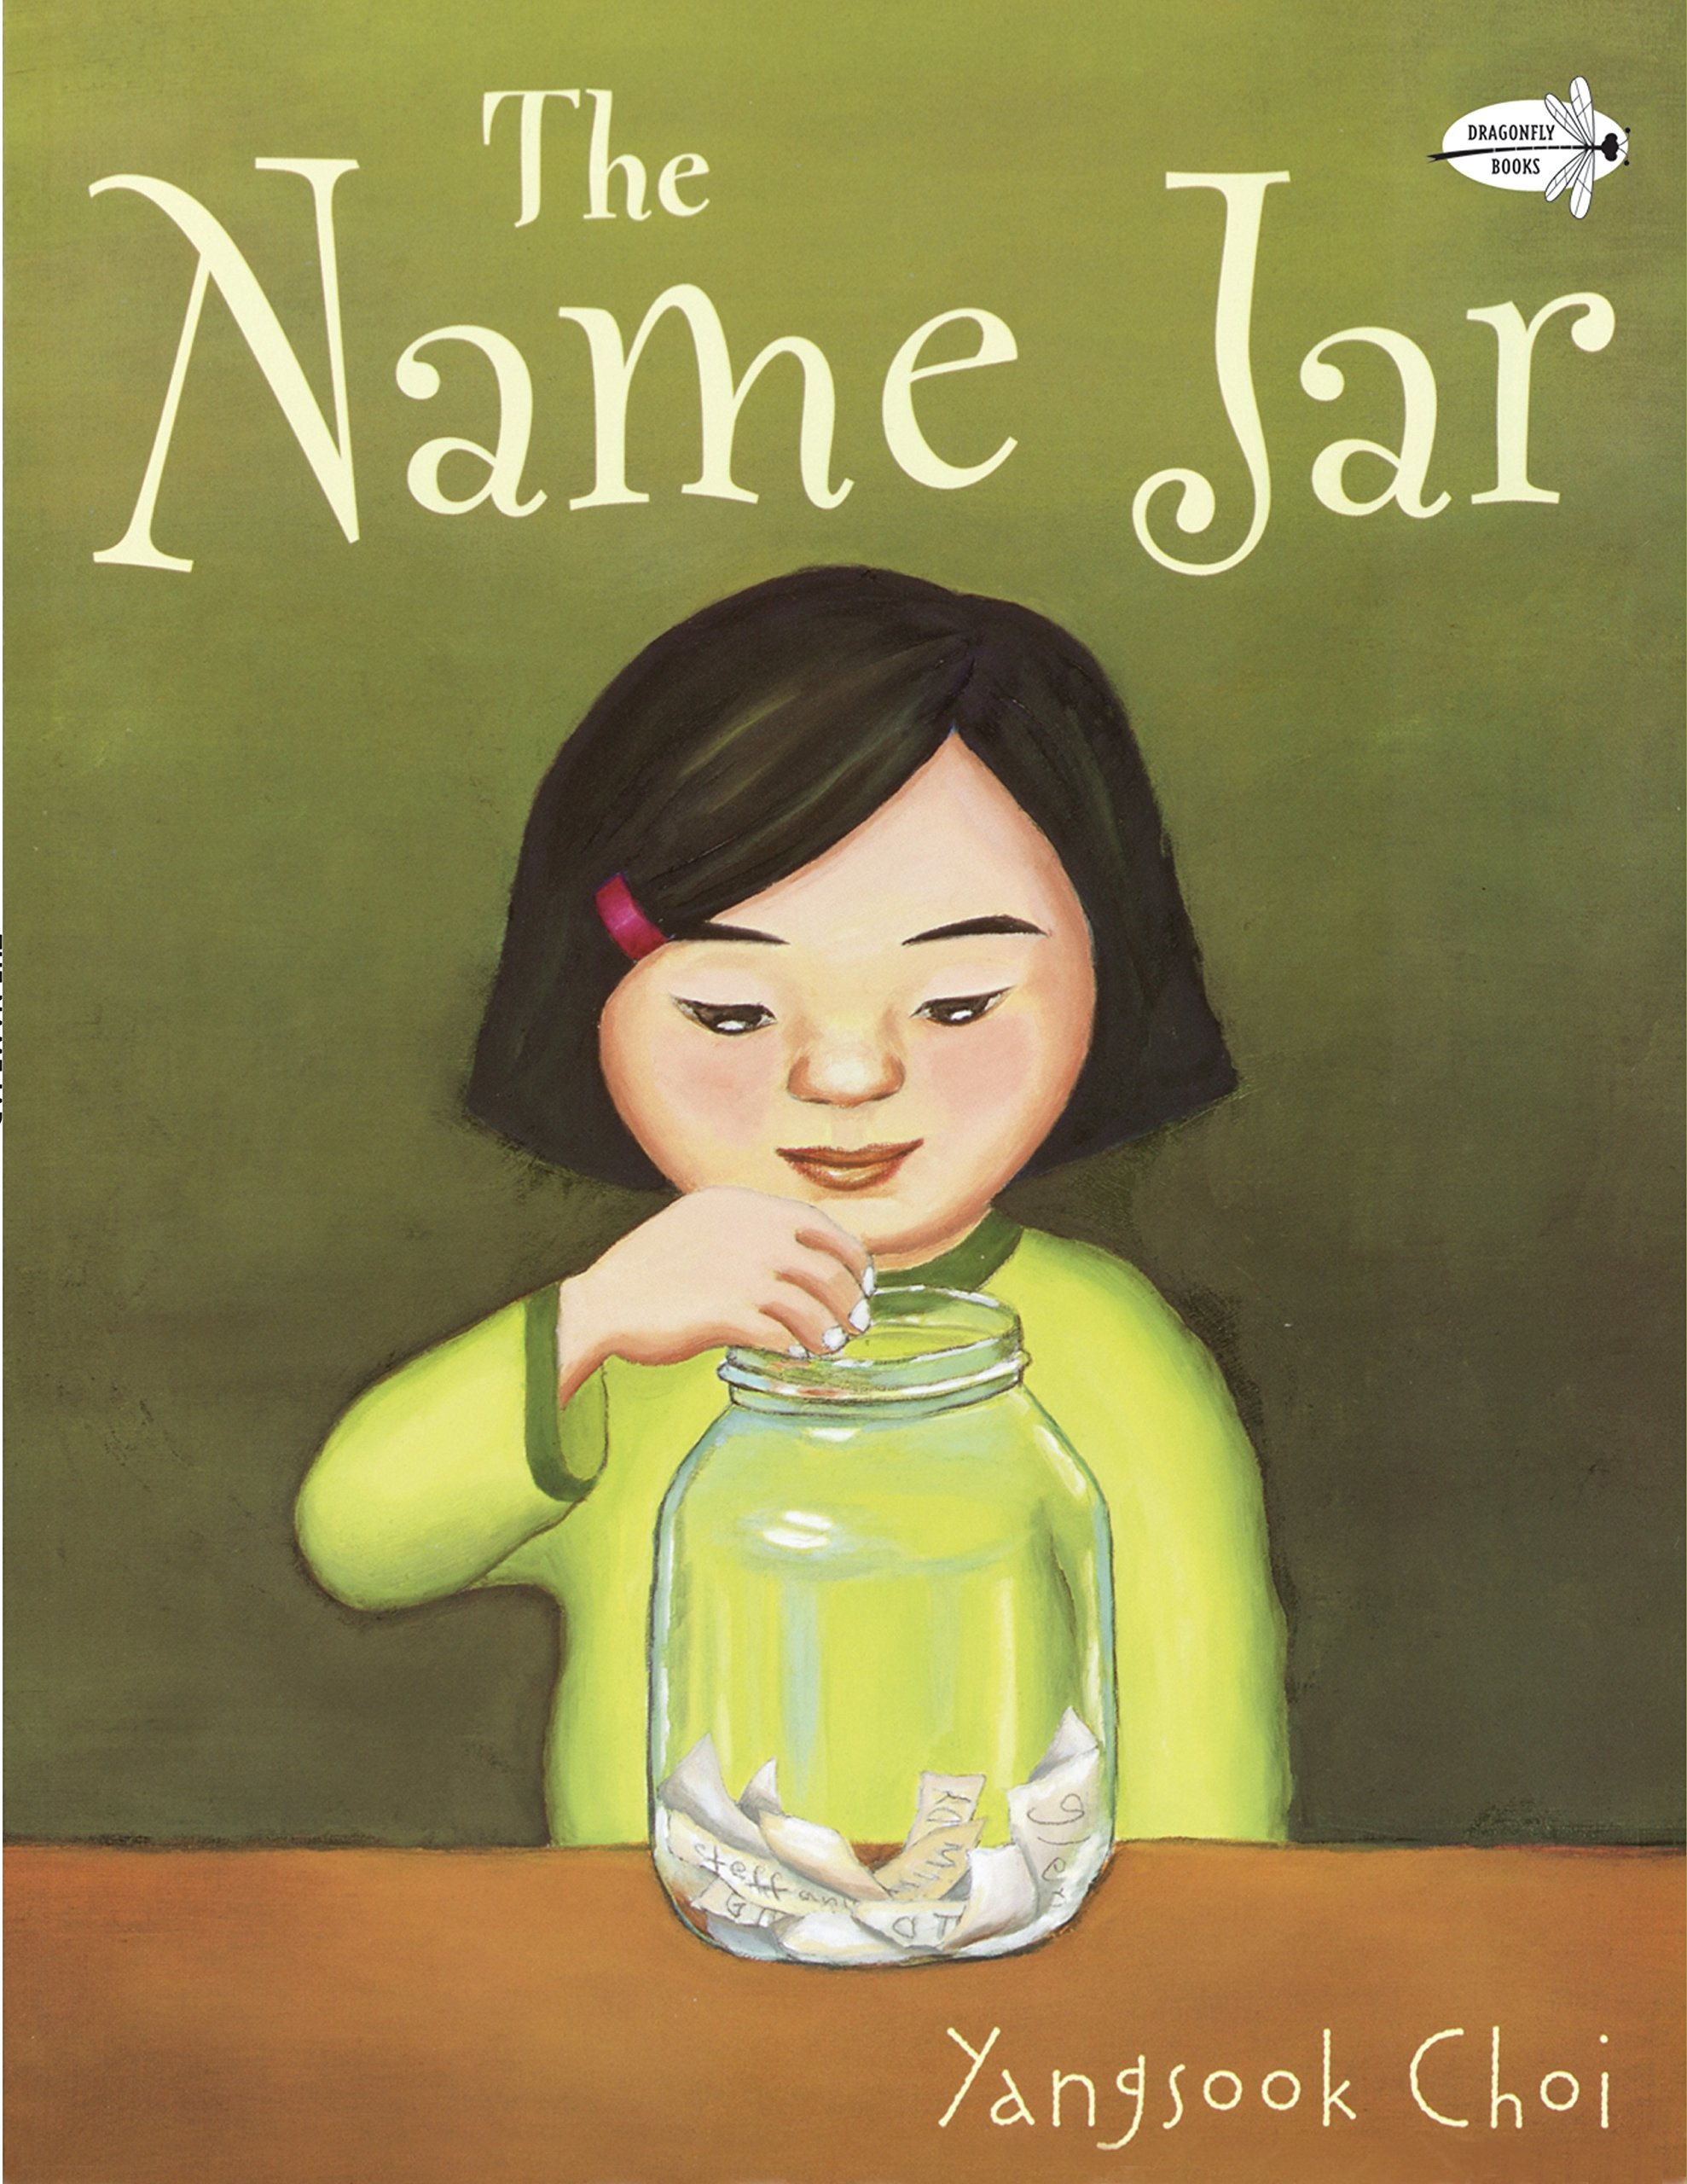 a young Korean girl with short black hair, wearing a green sweater has a jar with pieces of paper folded inside it. She is reaching in to pick a piece of paper. Above her is the book title: The Name Jar